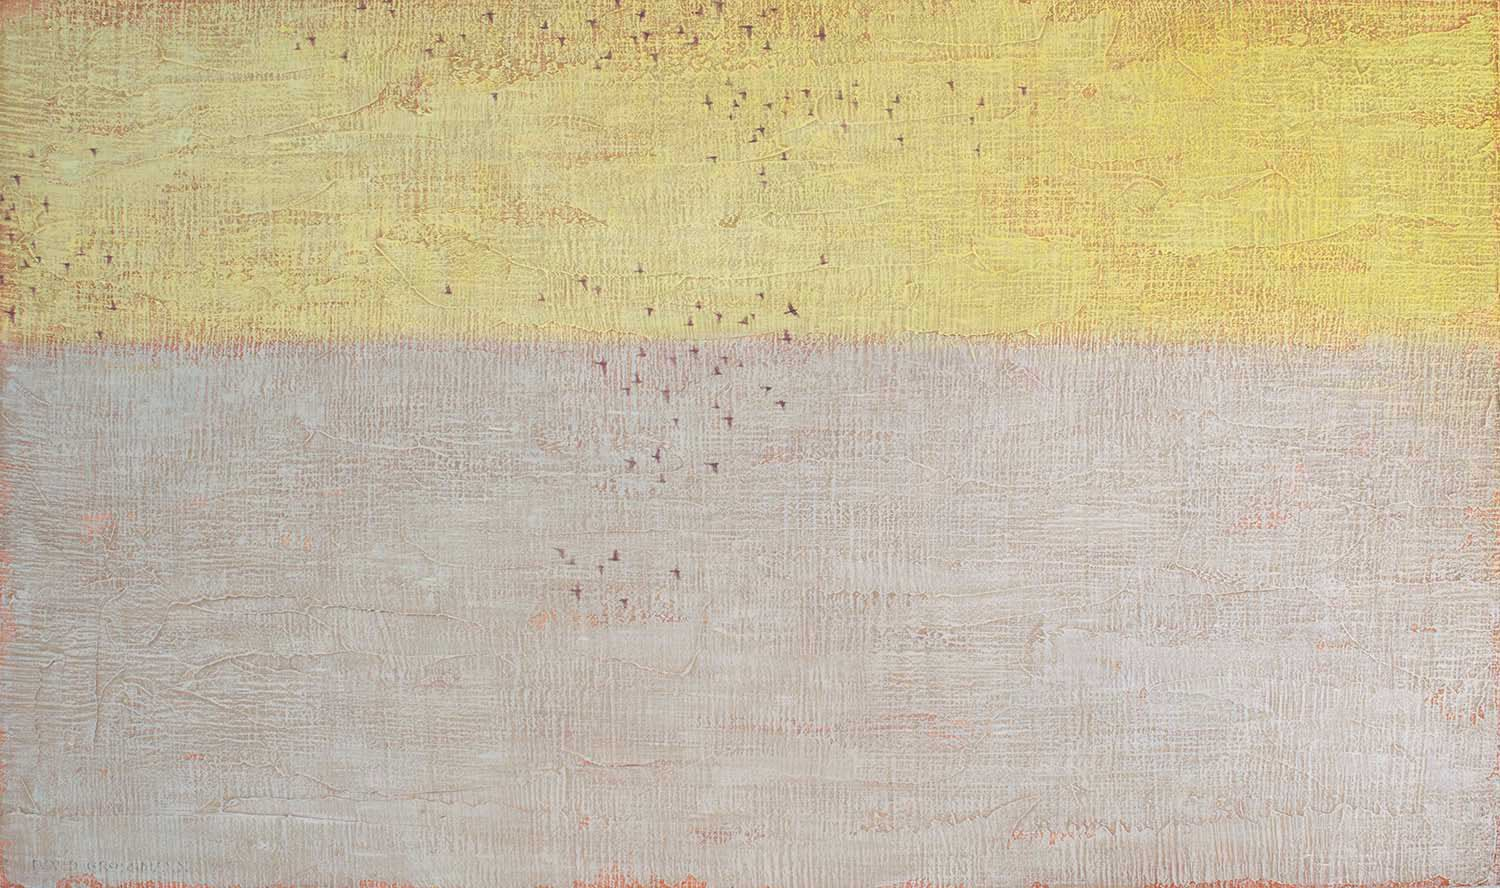 Winter-Birds-david-grossmann-oil-on-linen-panel.jpg